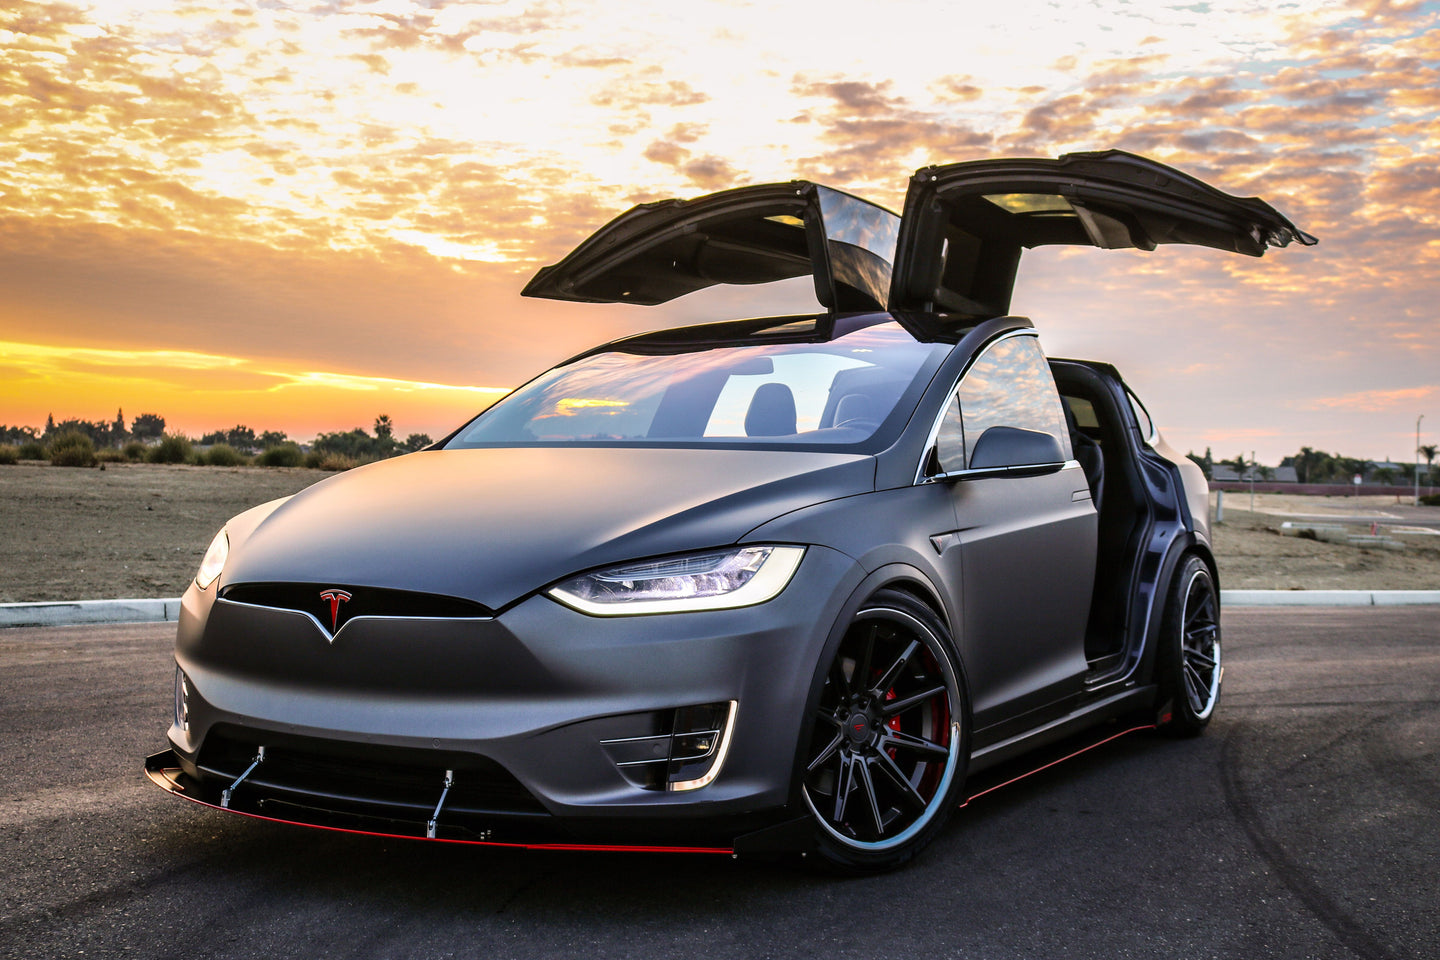 Tesla Model X | Splitter, Side Skirts, Rear Diffuser, Splitter Rods, Canards, Side Skirts